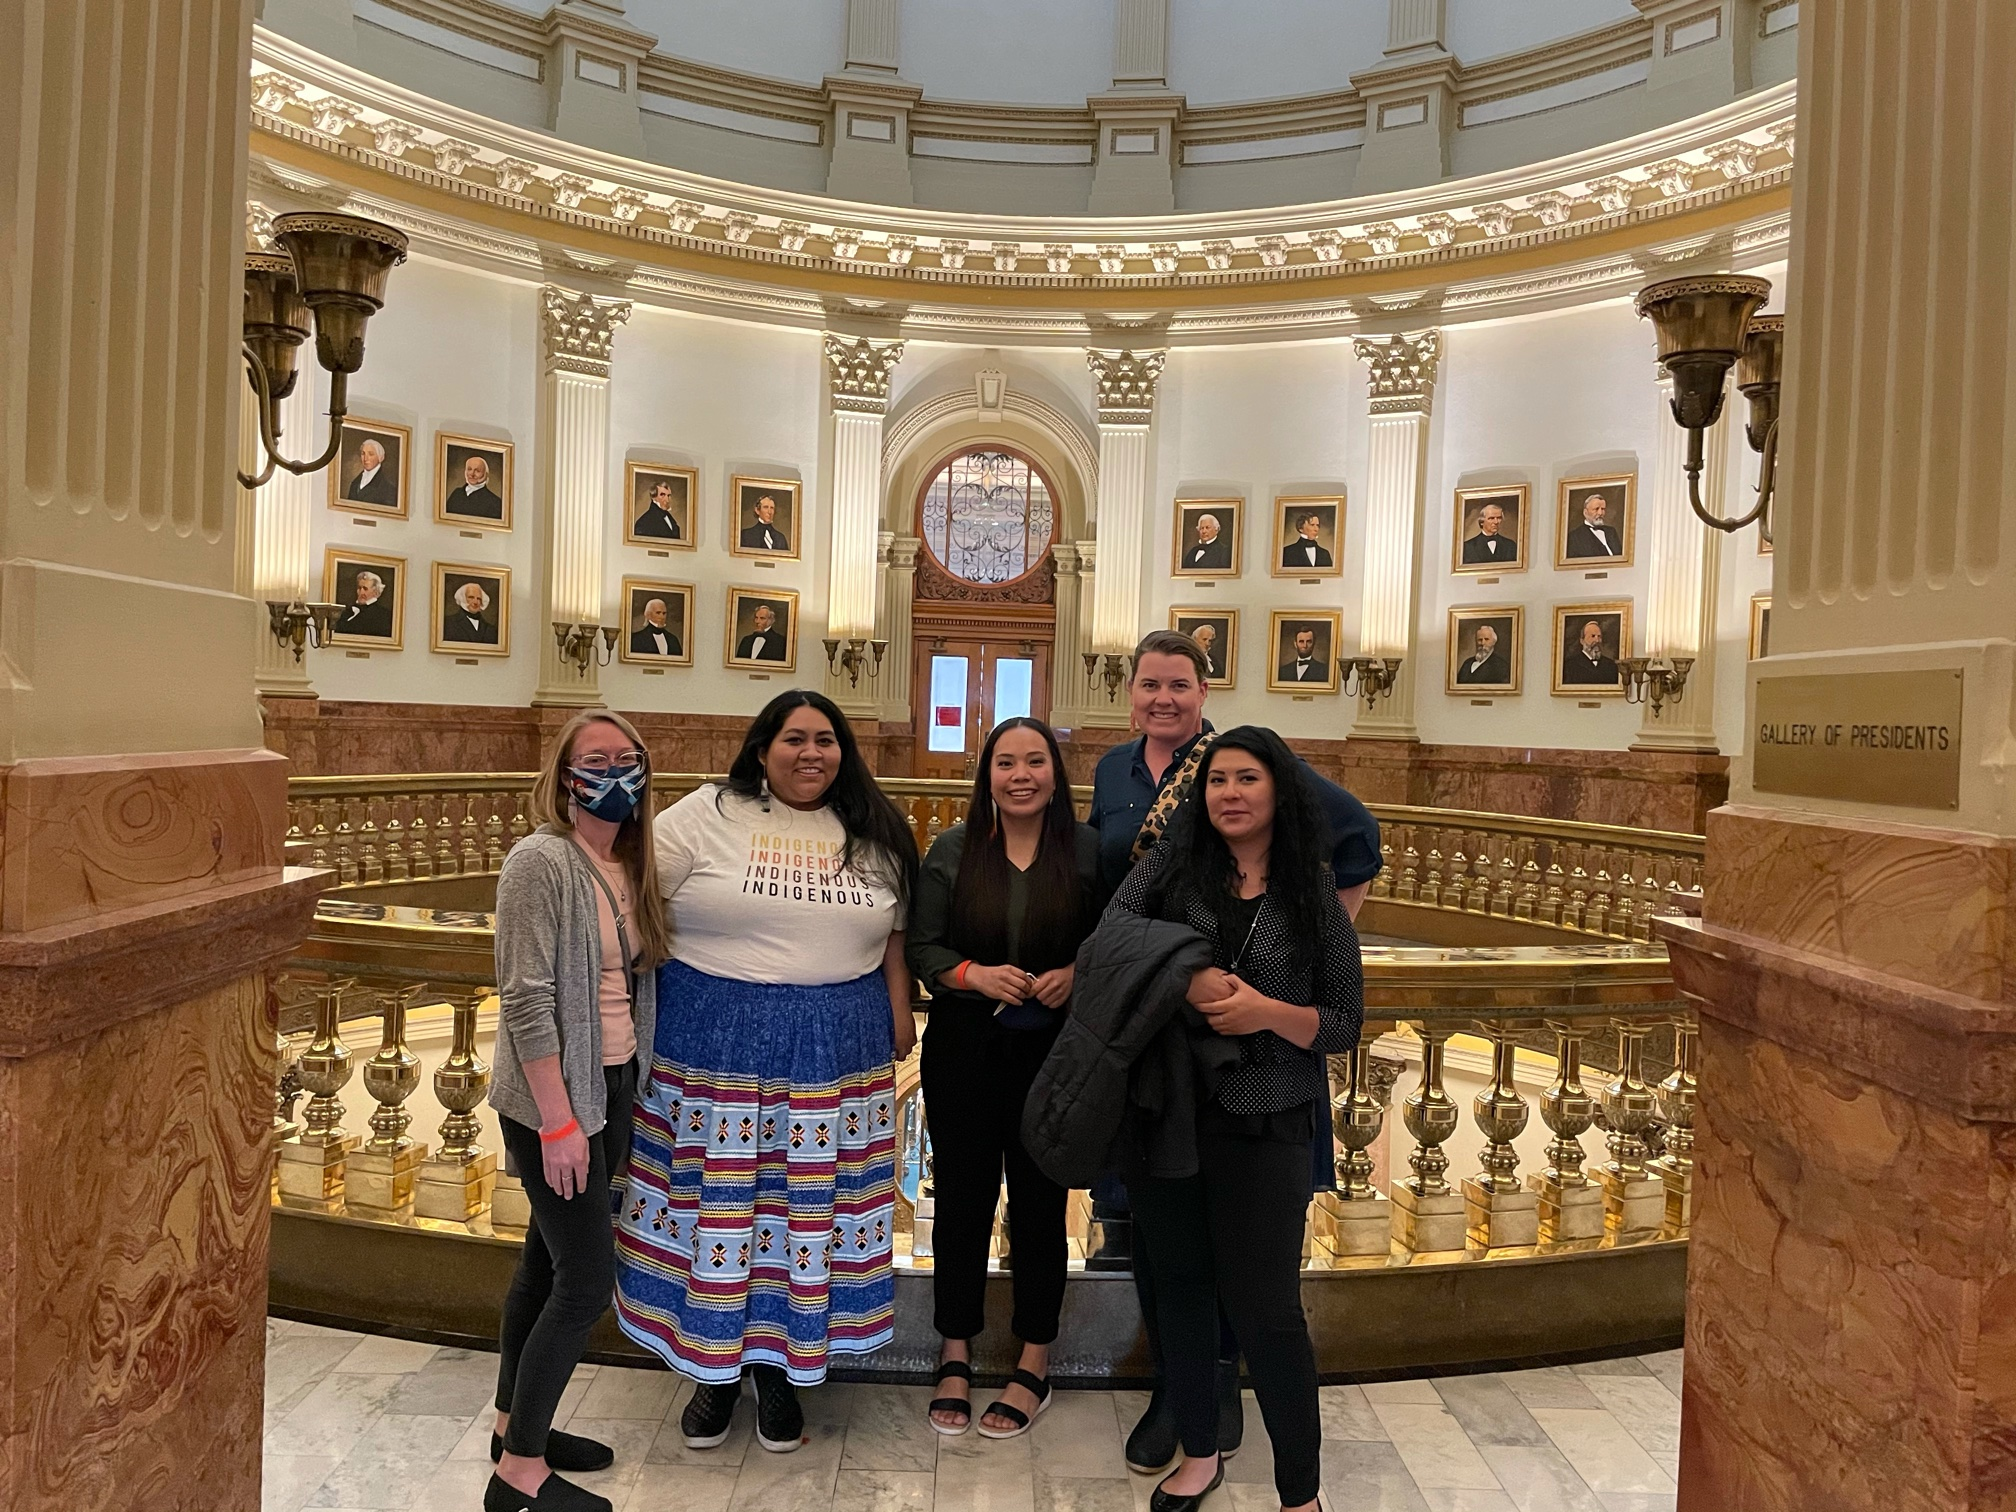 DIFRC Staff inside the Colorado State Capitol